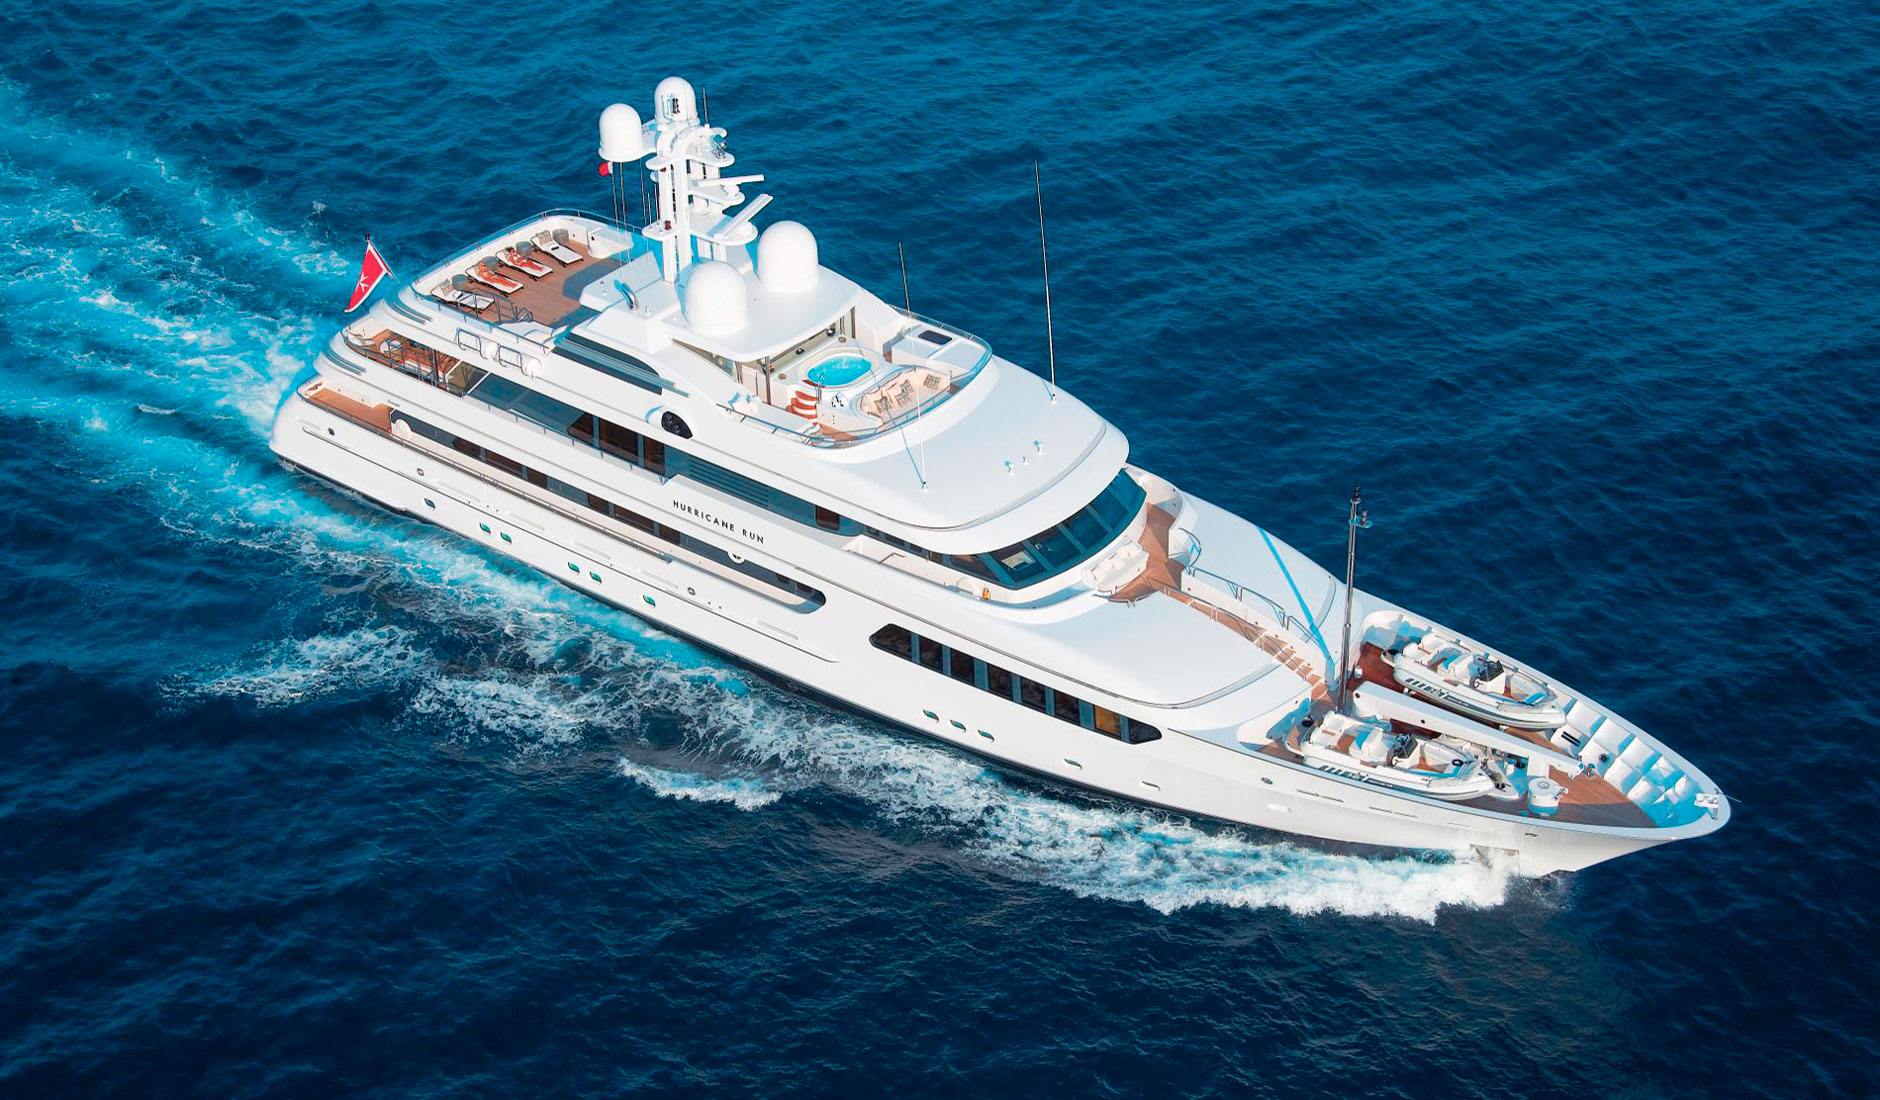 Аренда яхты HURRICANE RUN FEADSHIP 175′